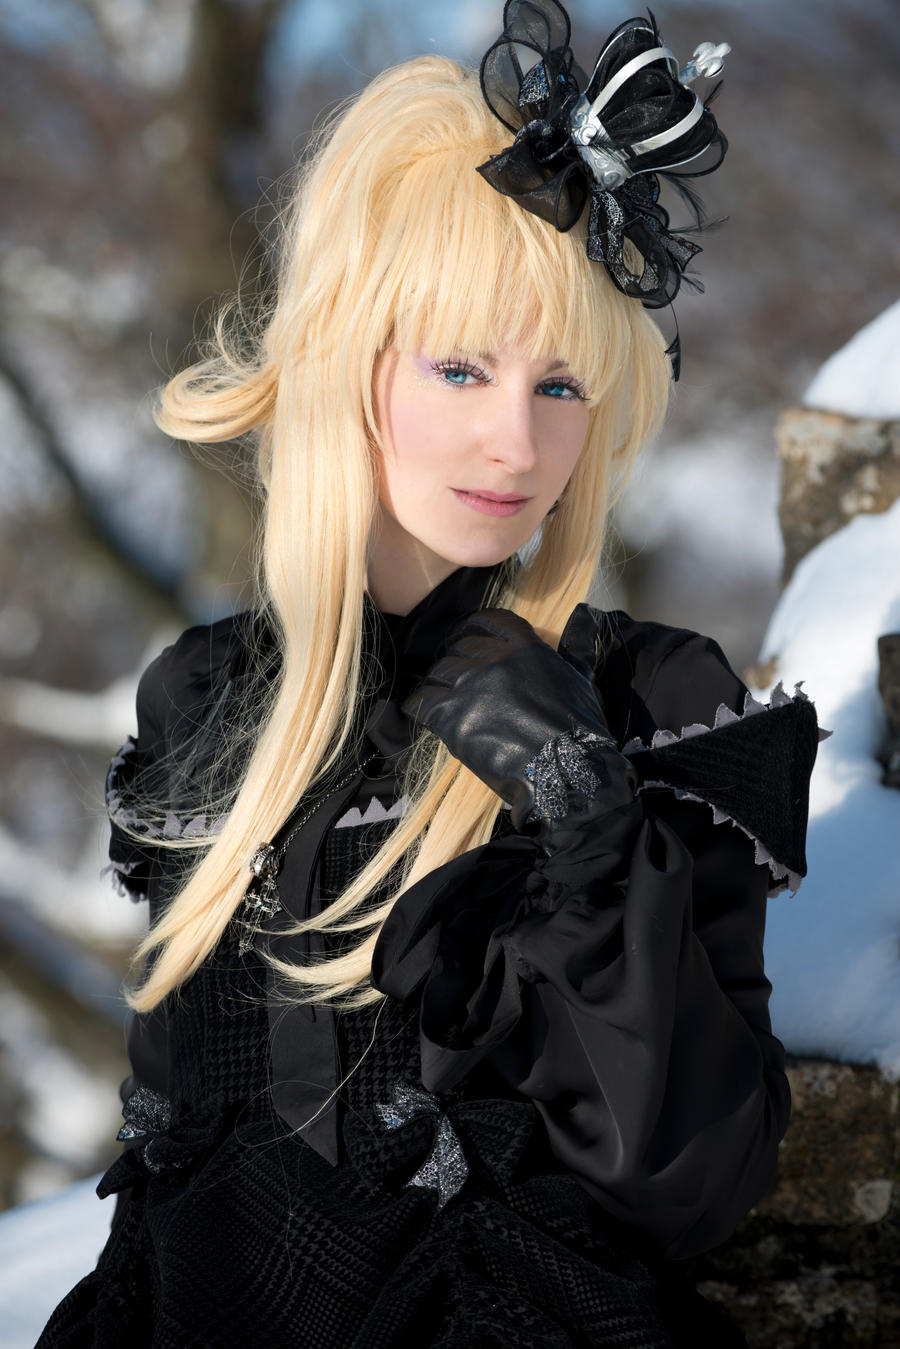 Lolita - Black queen by RomaiLee